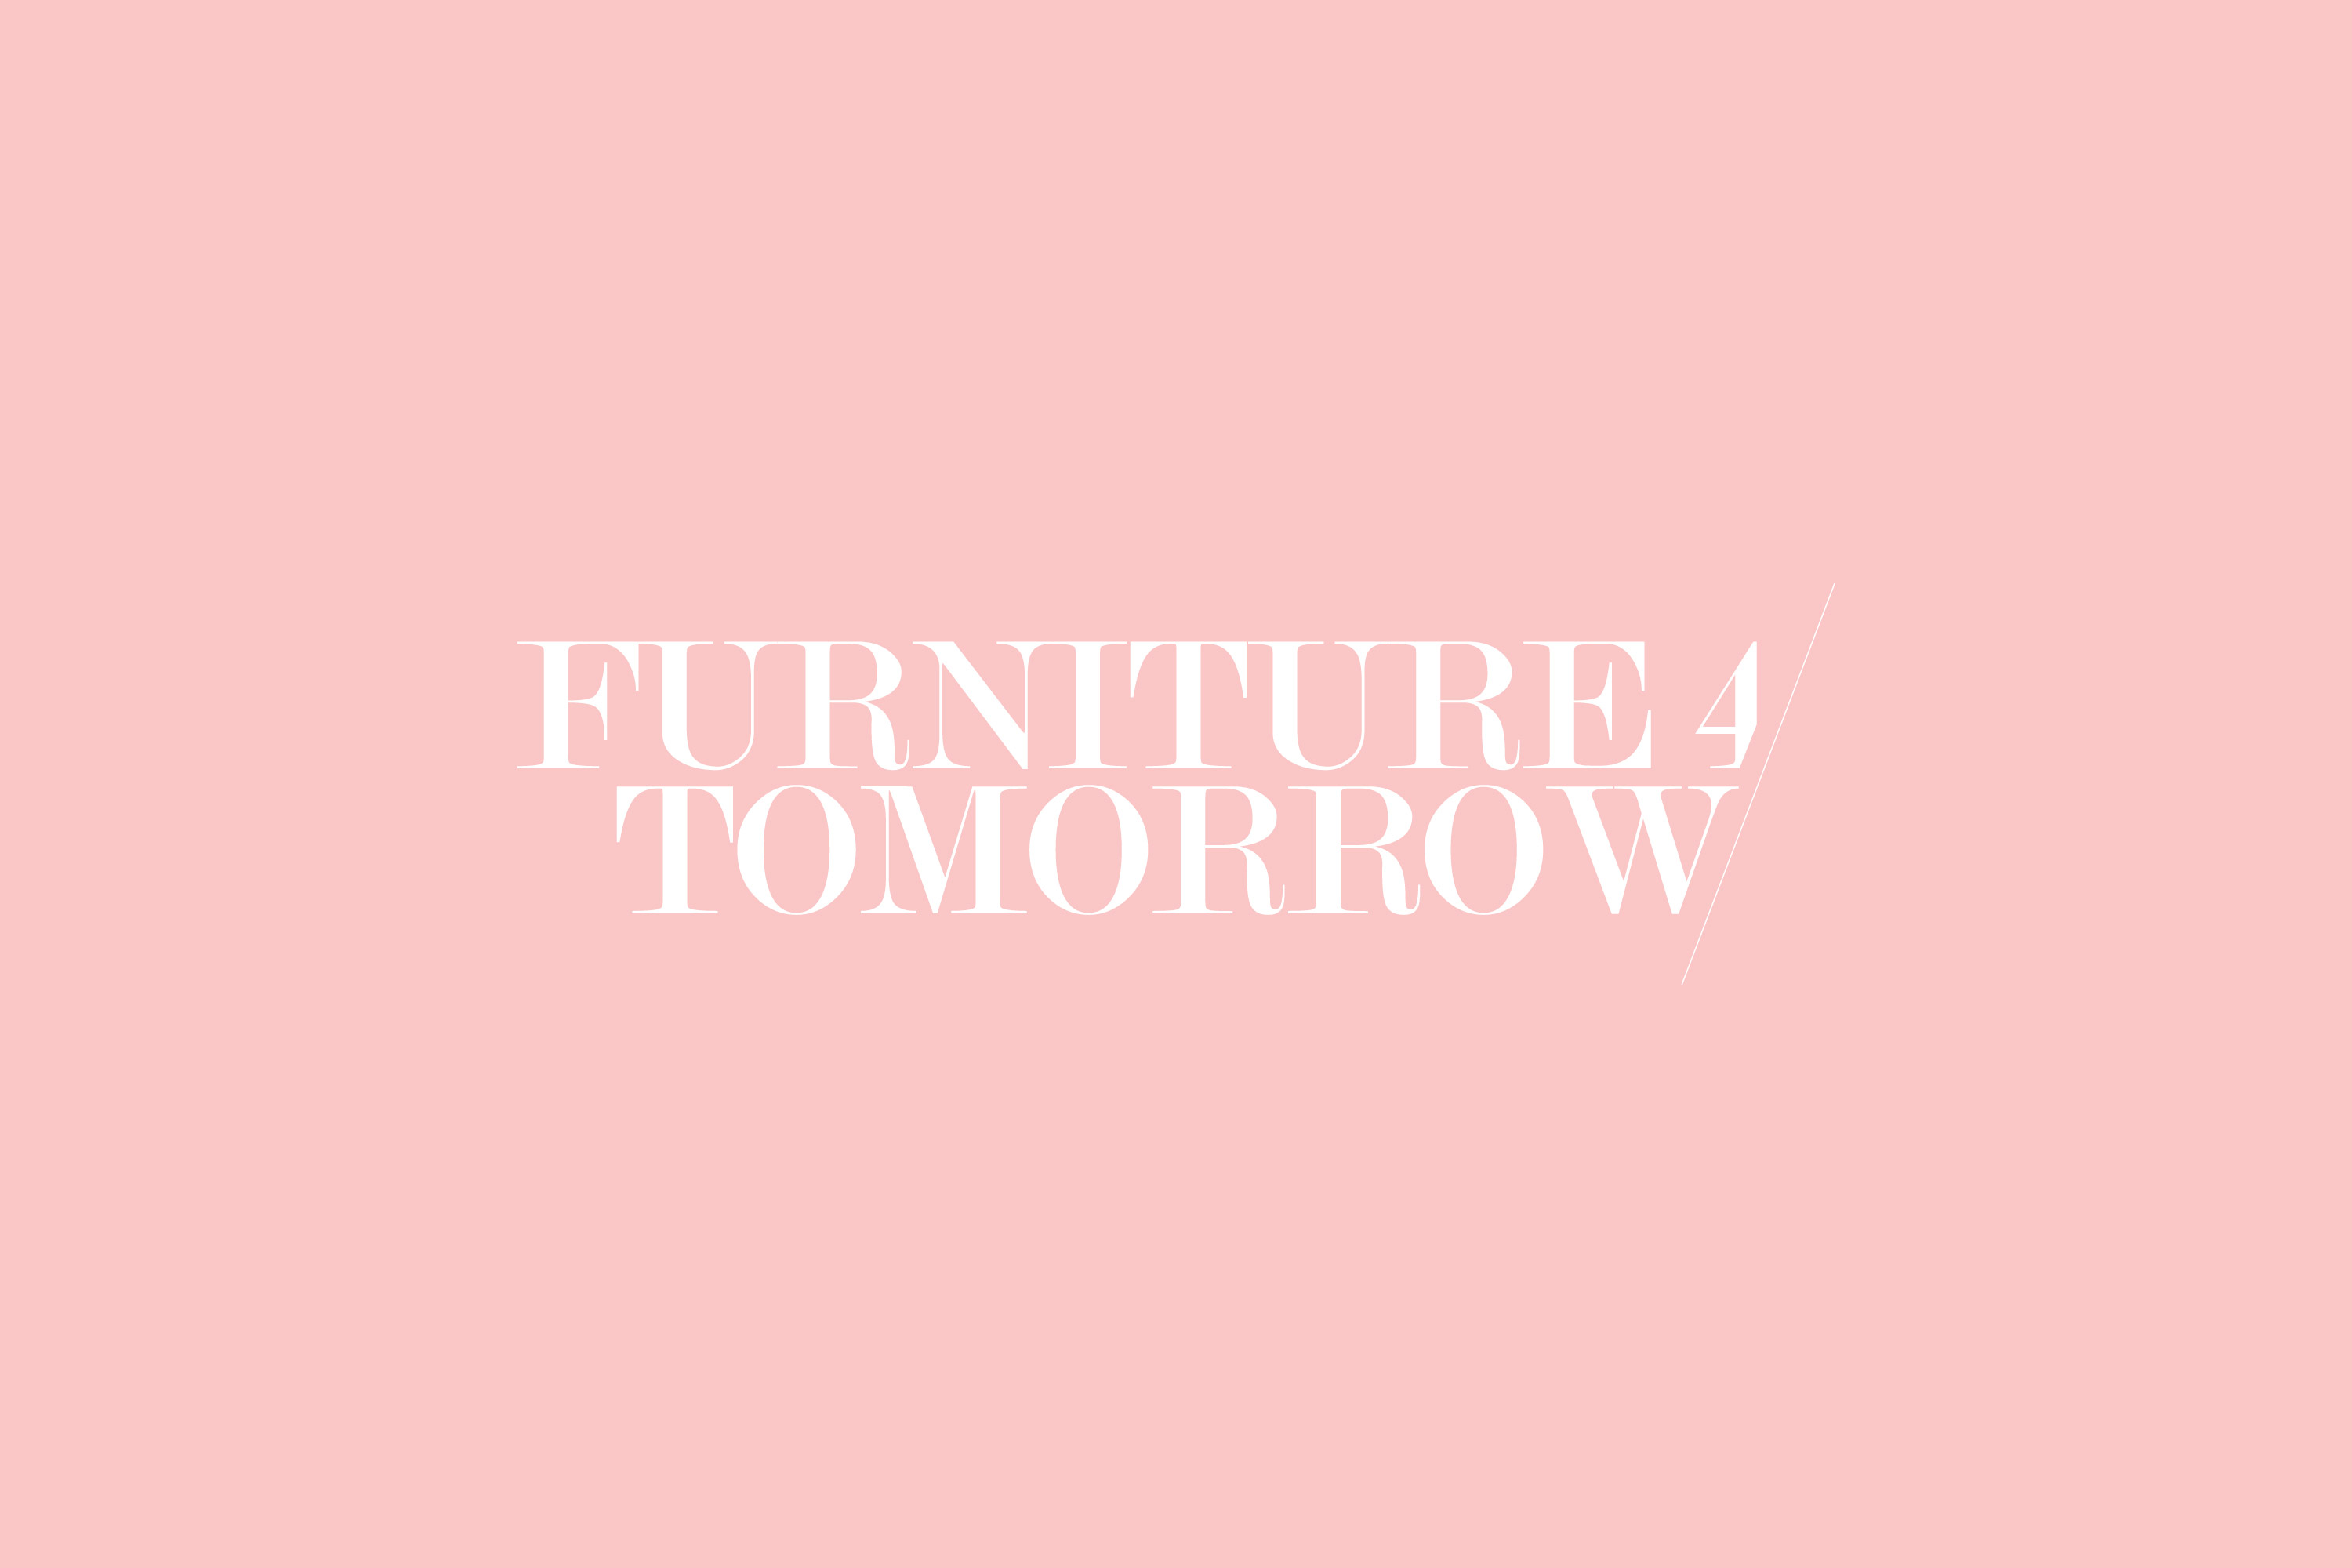 Furniture 4 Tomorrow